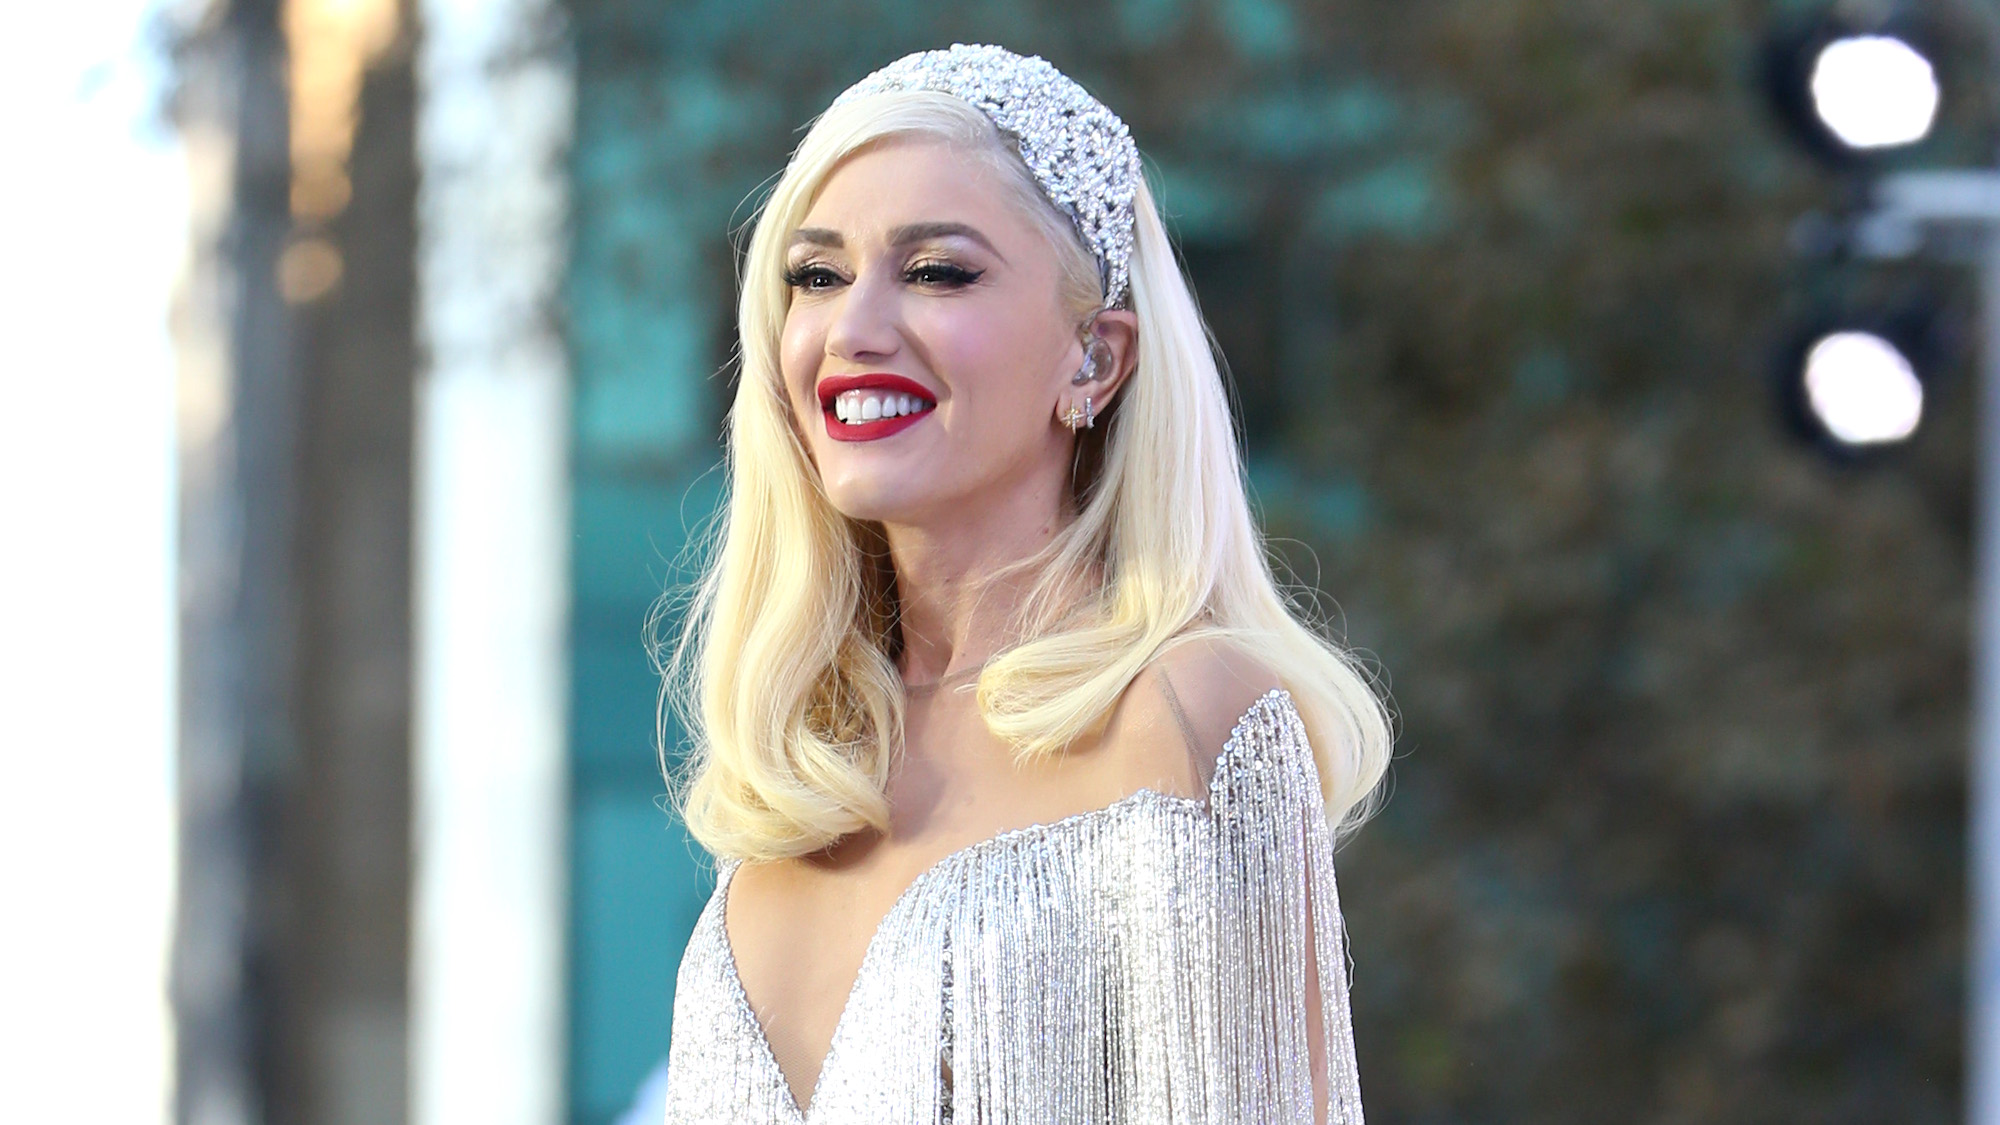 It looks like Gwen Stefani is planning to launch her own cosmetics line